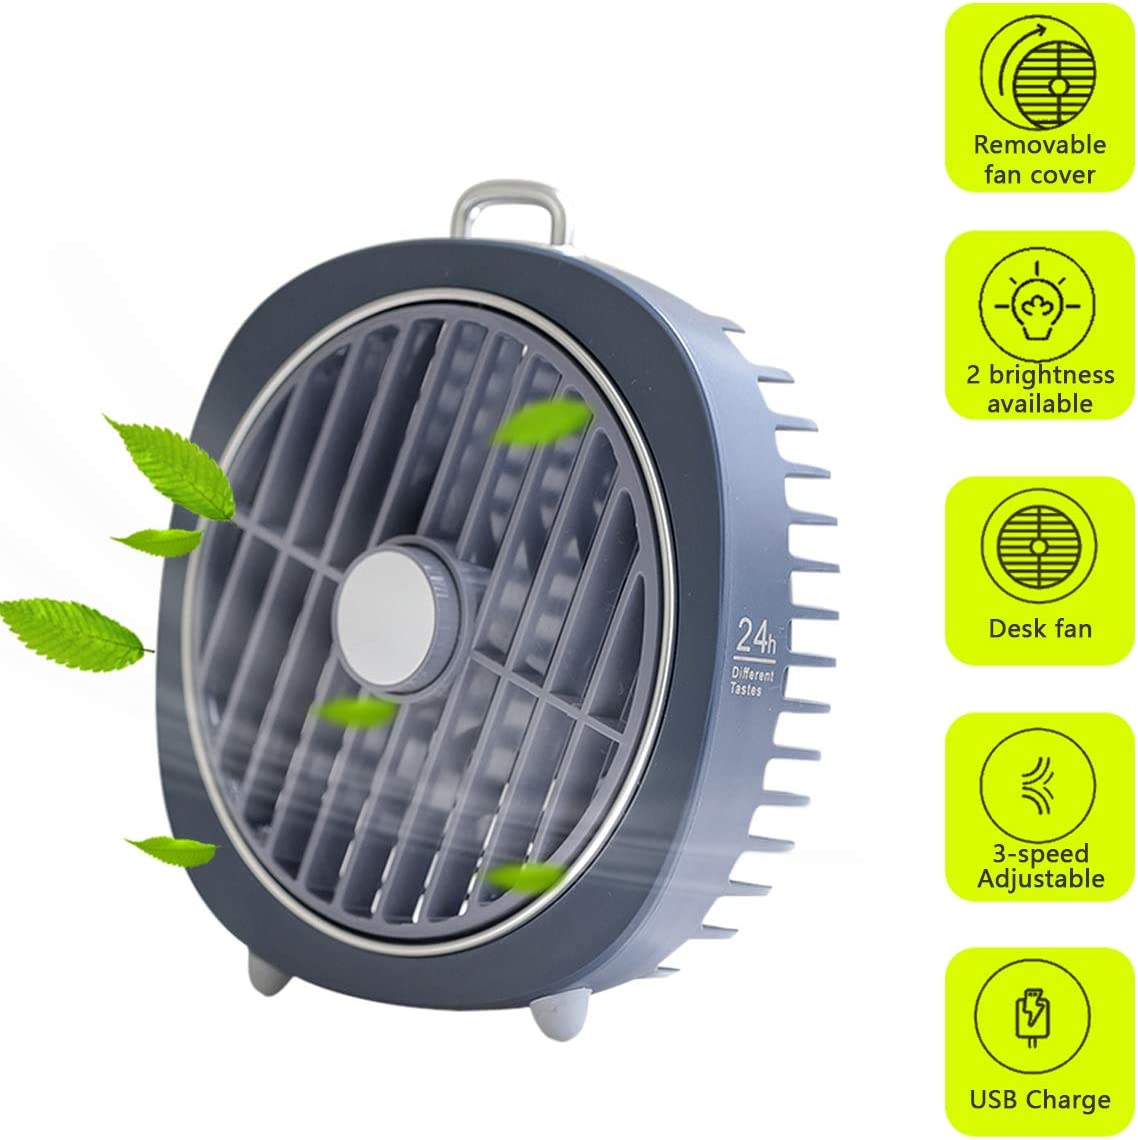 Blue Mini Table Personal Fan,Portable USB Fan,High Compatibility,360 Rotation,Quiet Operation with 3 Speed for Home and Office Gifort USB Fan